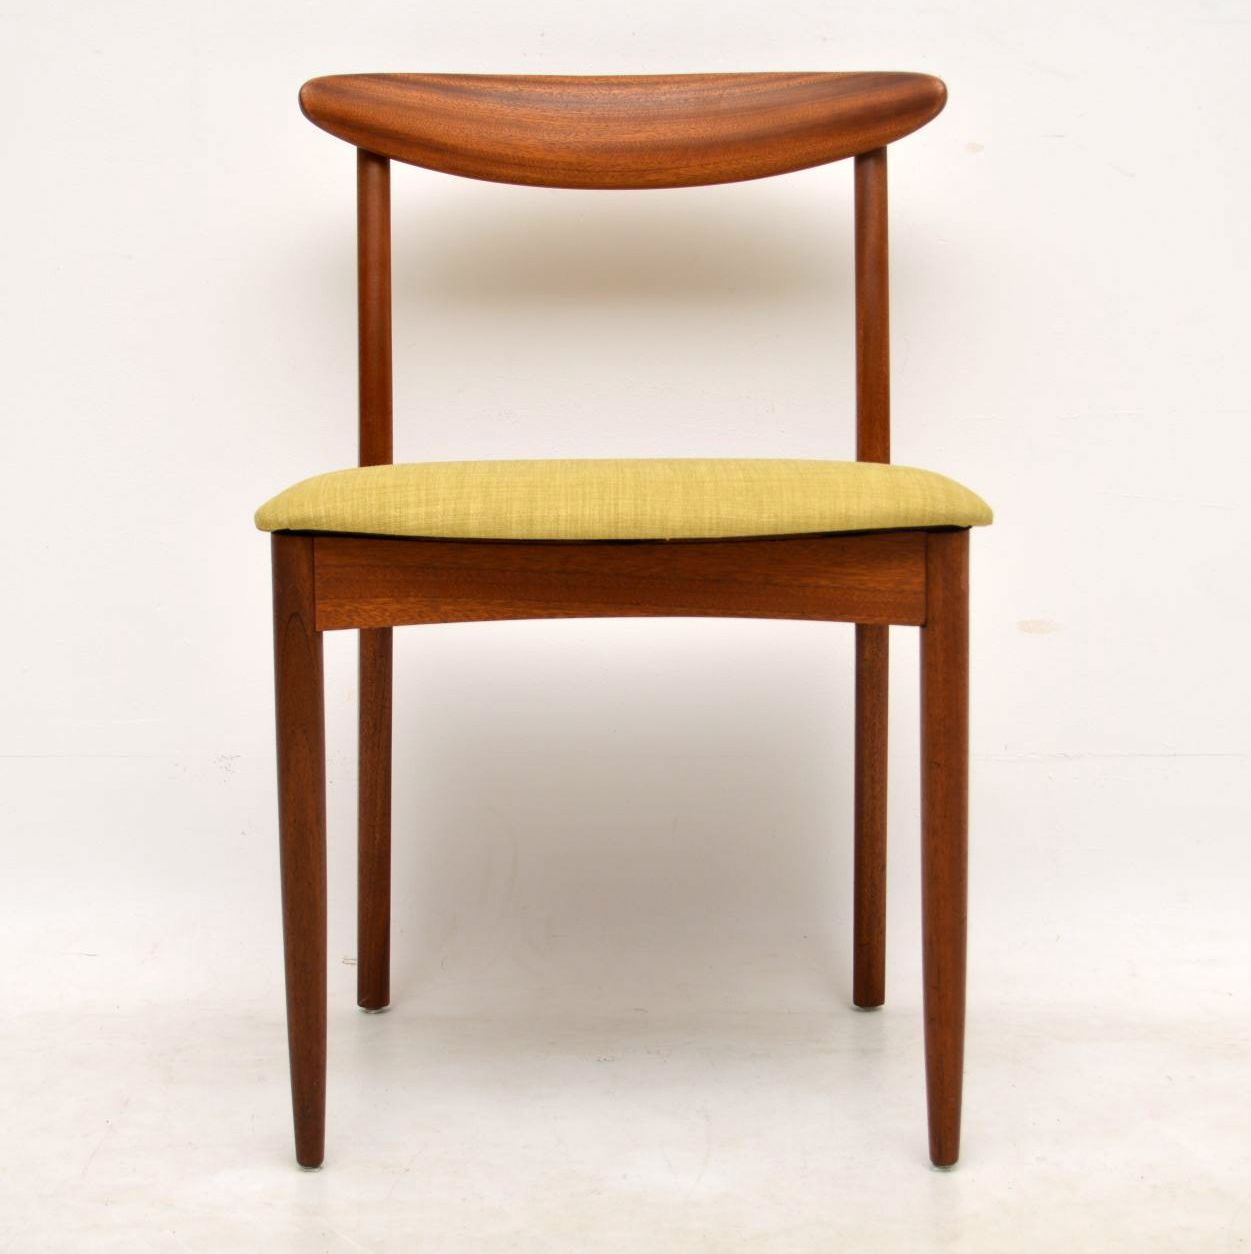 Teak Dining Table And Chairs: 1960's Teak Dining Table And 6 Chairs By Greaves & Thomas